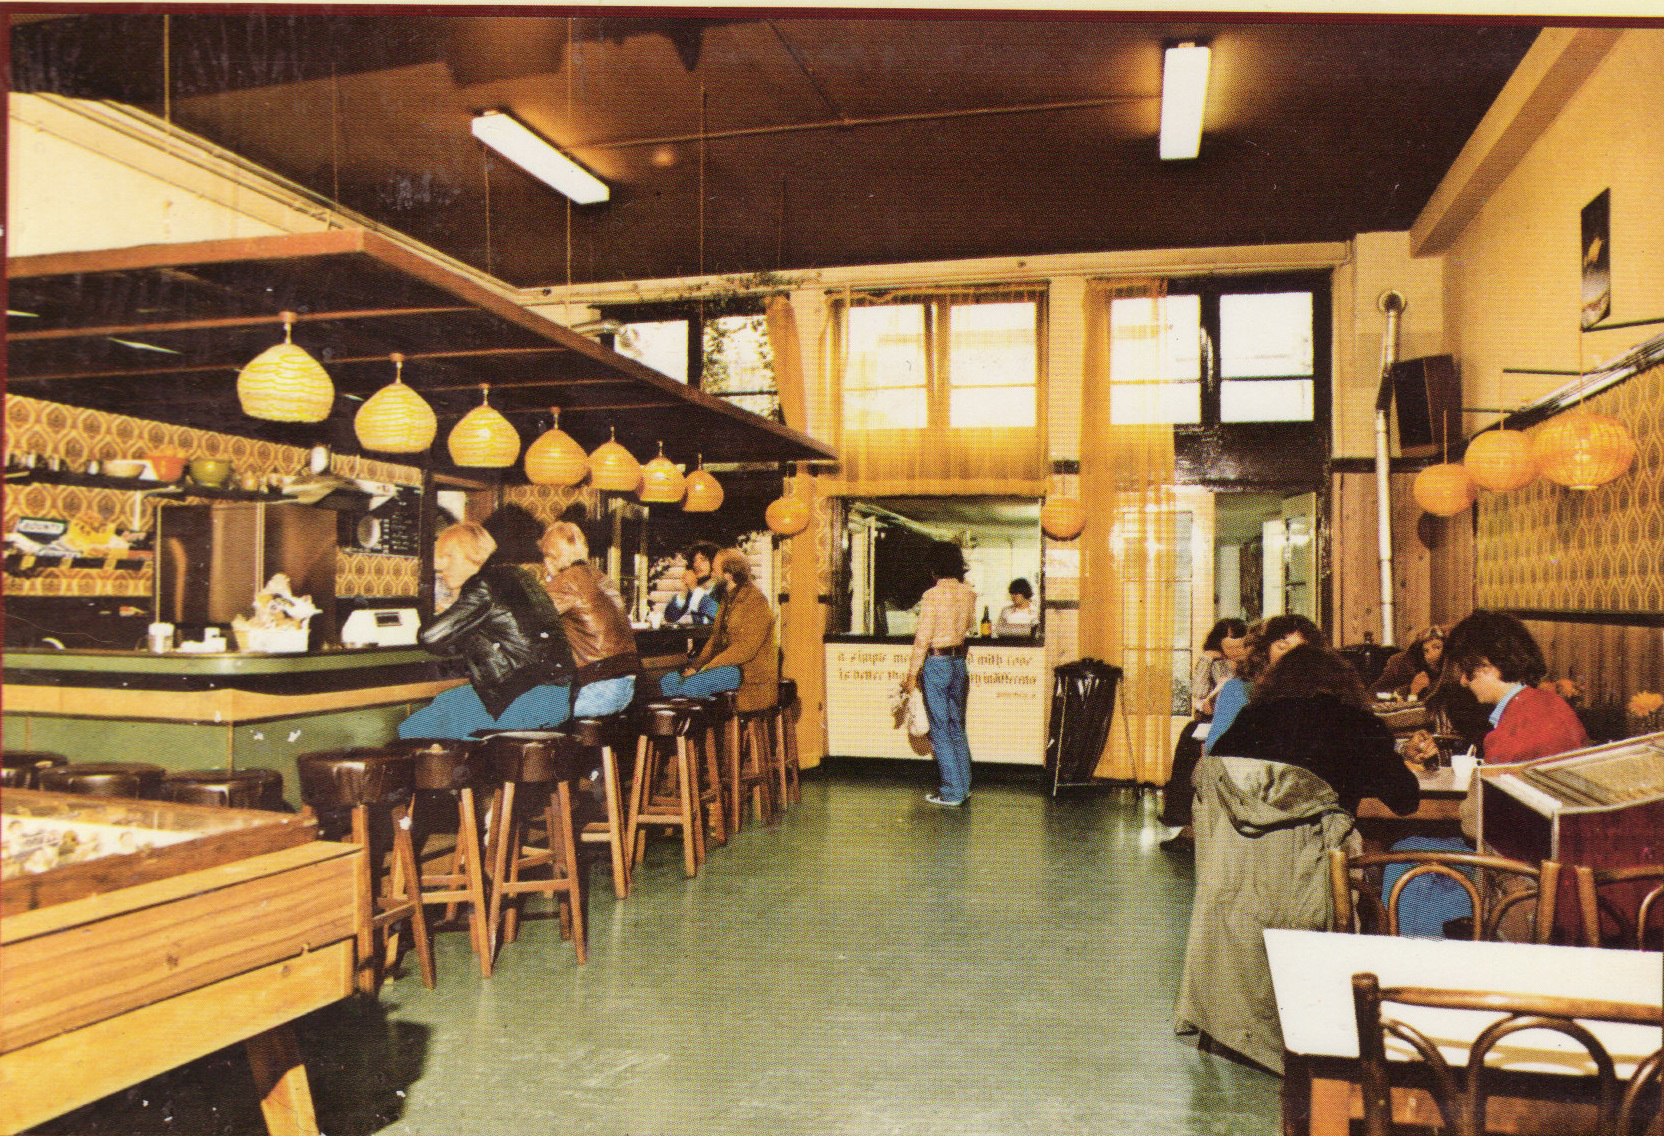 The Shelter Jordan cafe back in the 80's